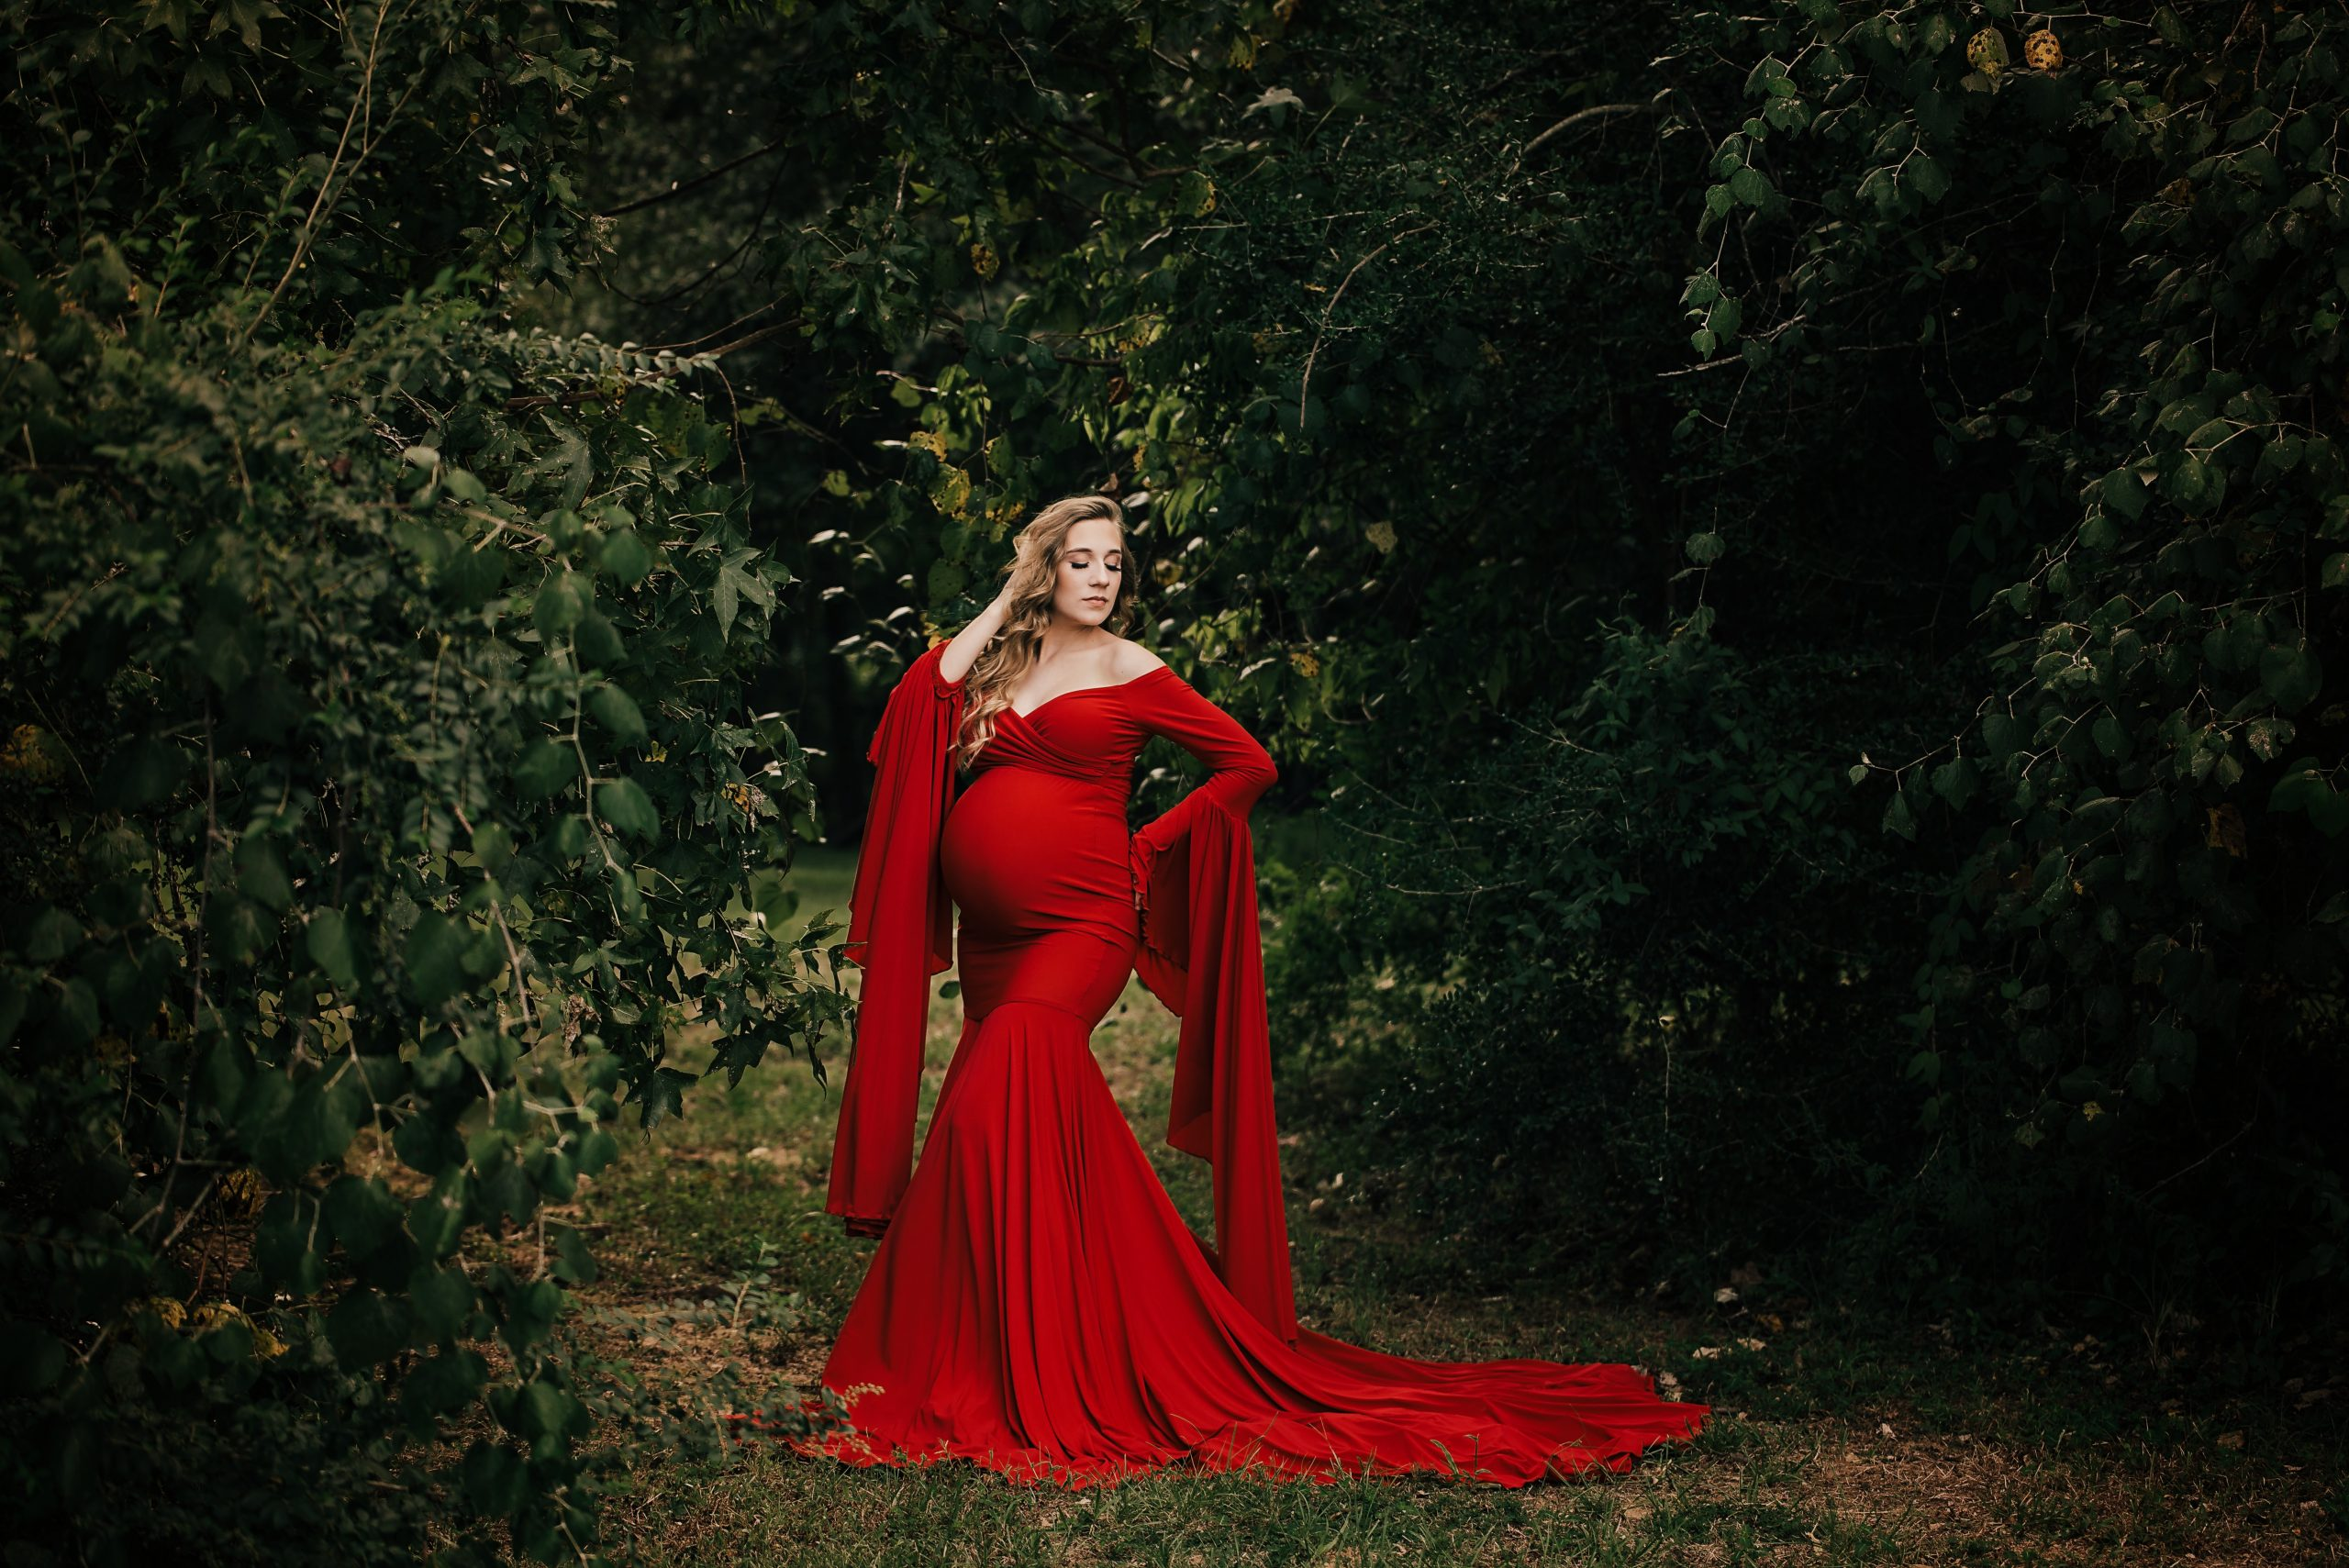 Christy maternity gown for photoshoot Miss Madison Couture